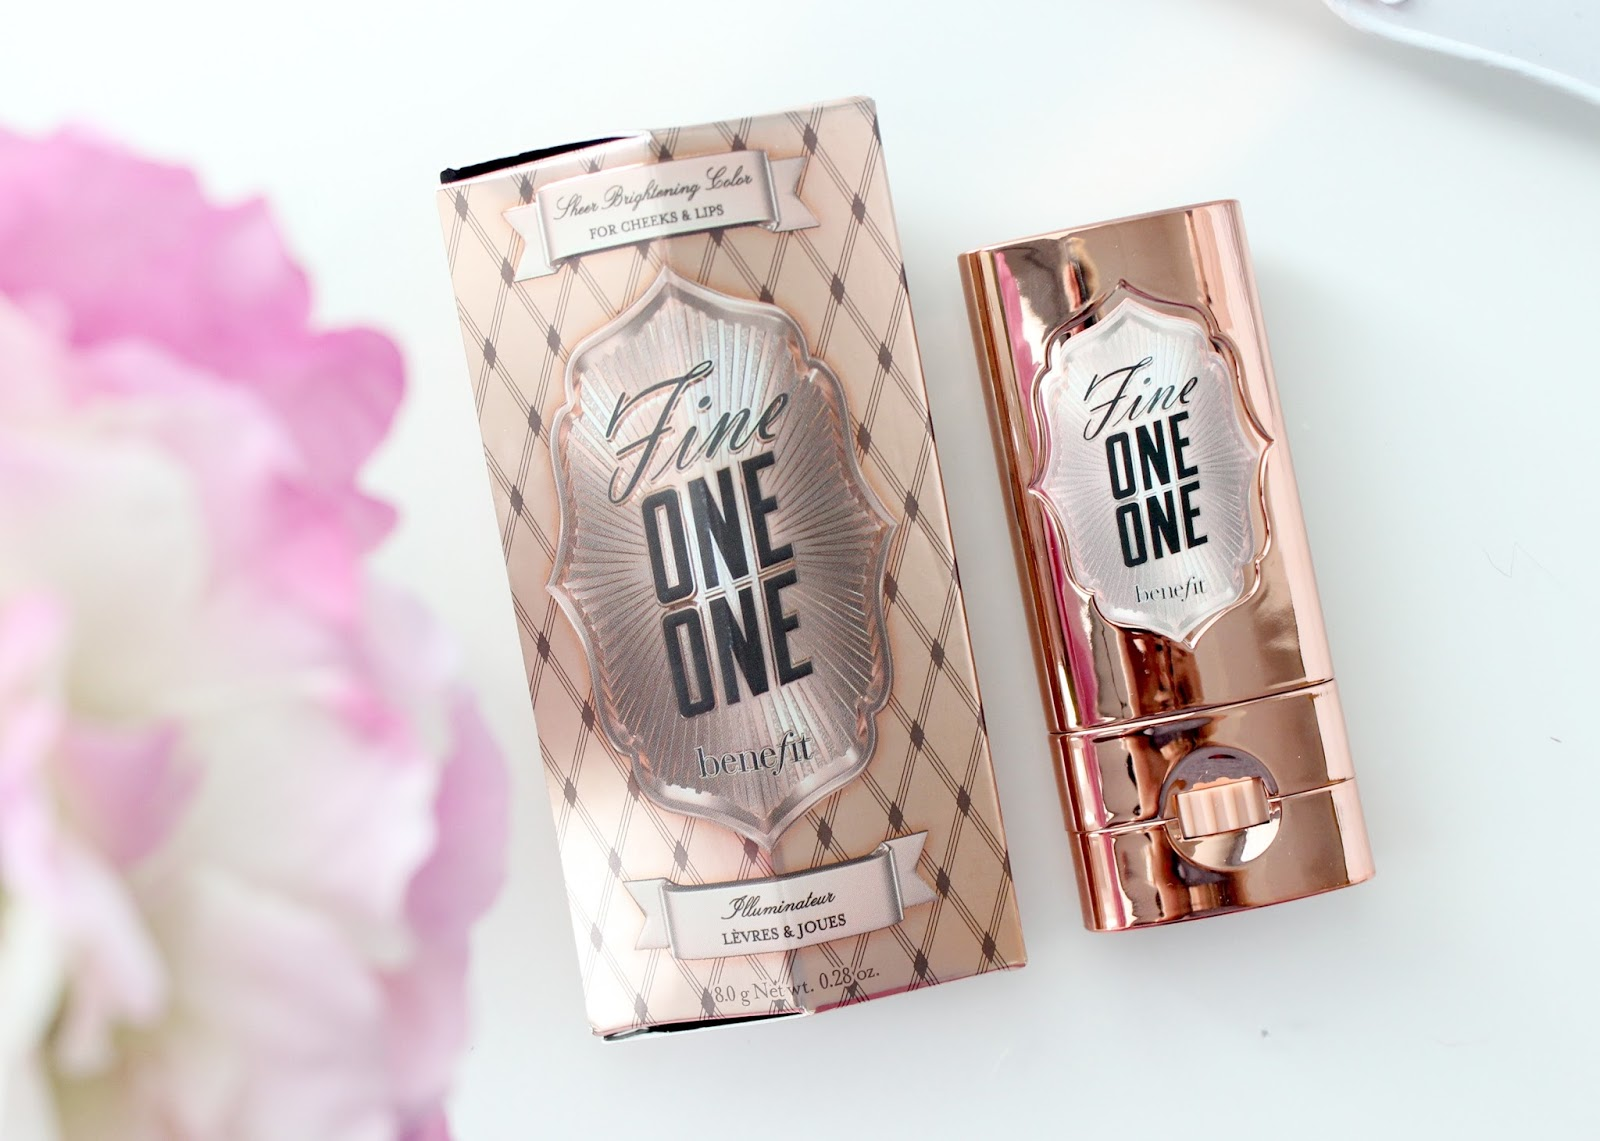 Fine-One-One Sheer Brightening Color for Cheeks & Lips by Benefit #19